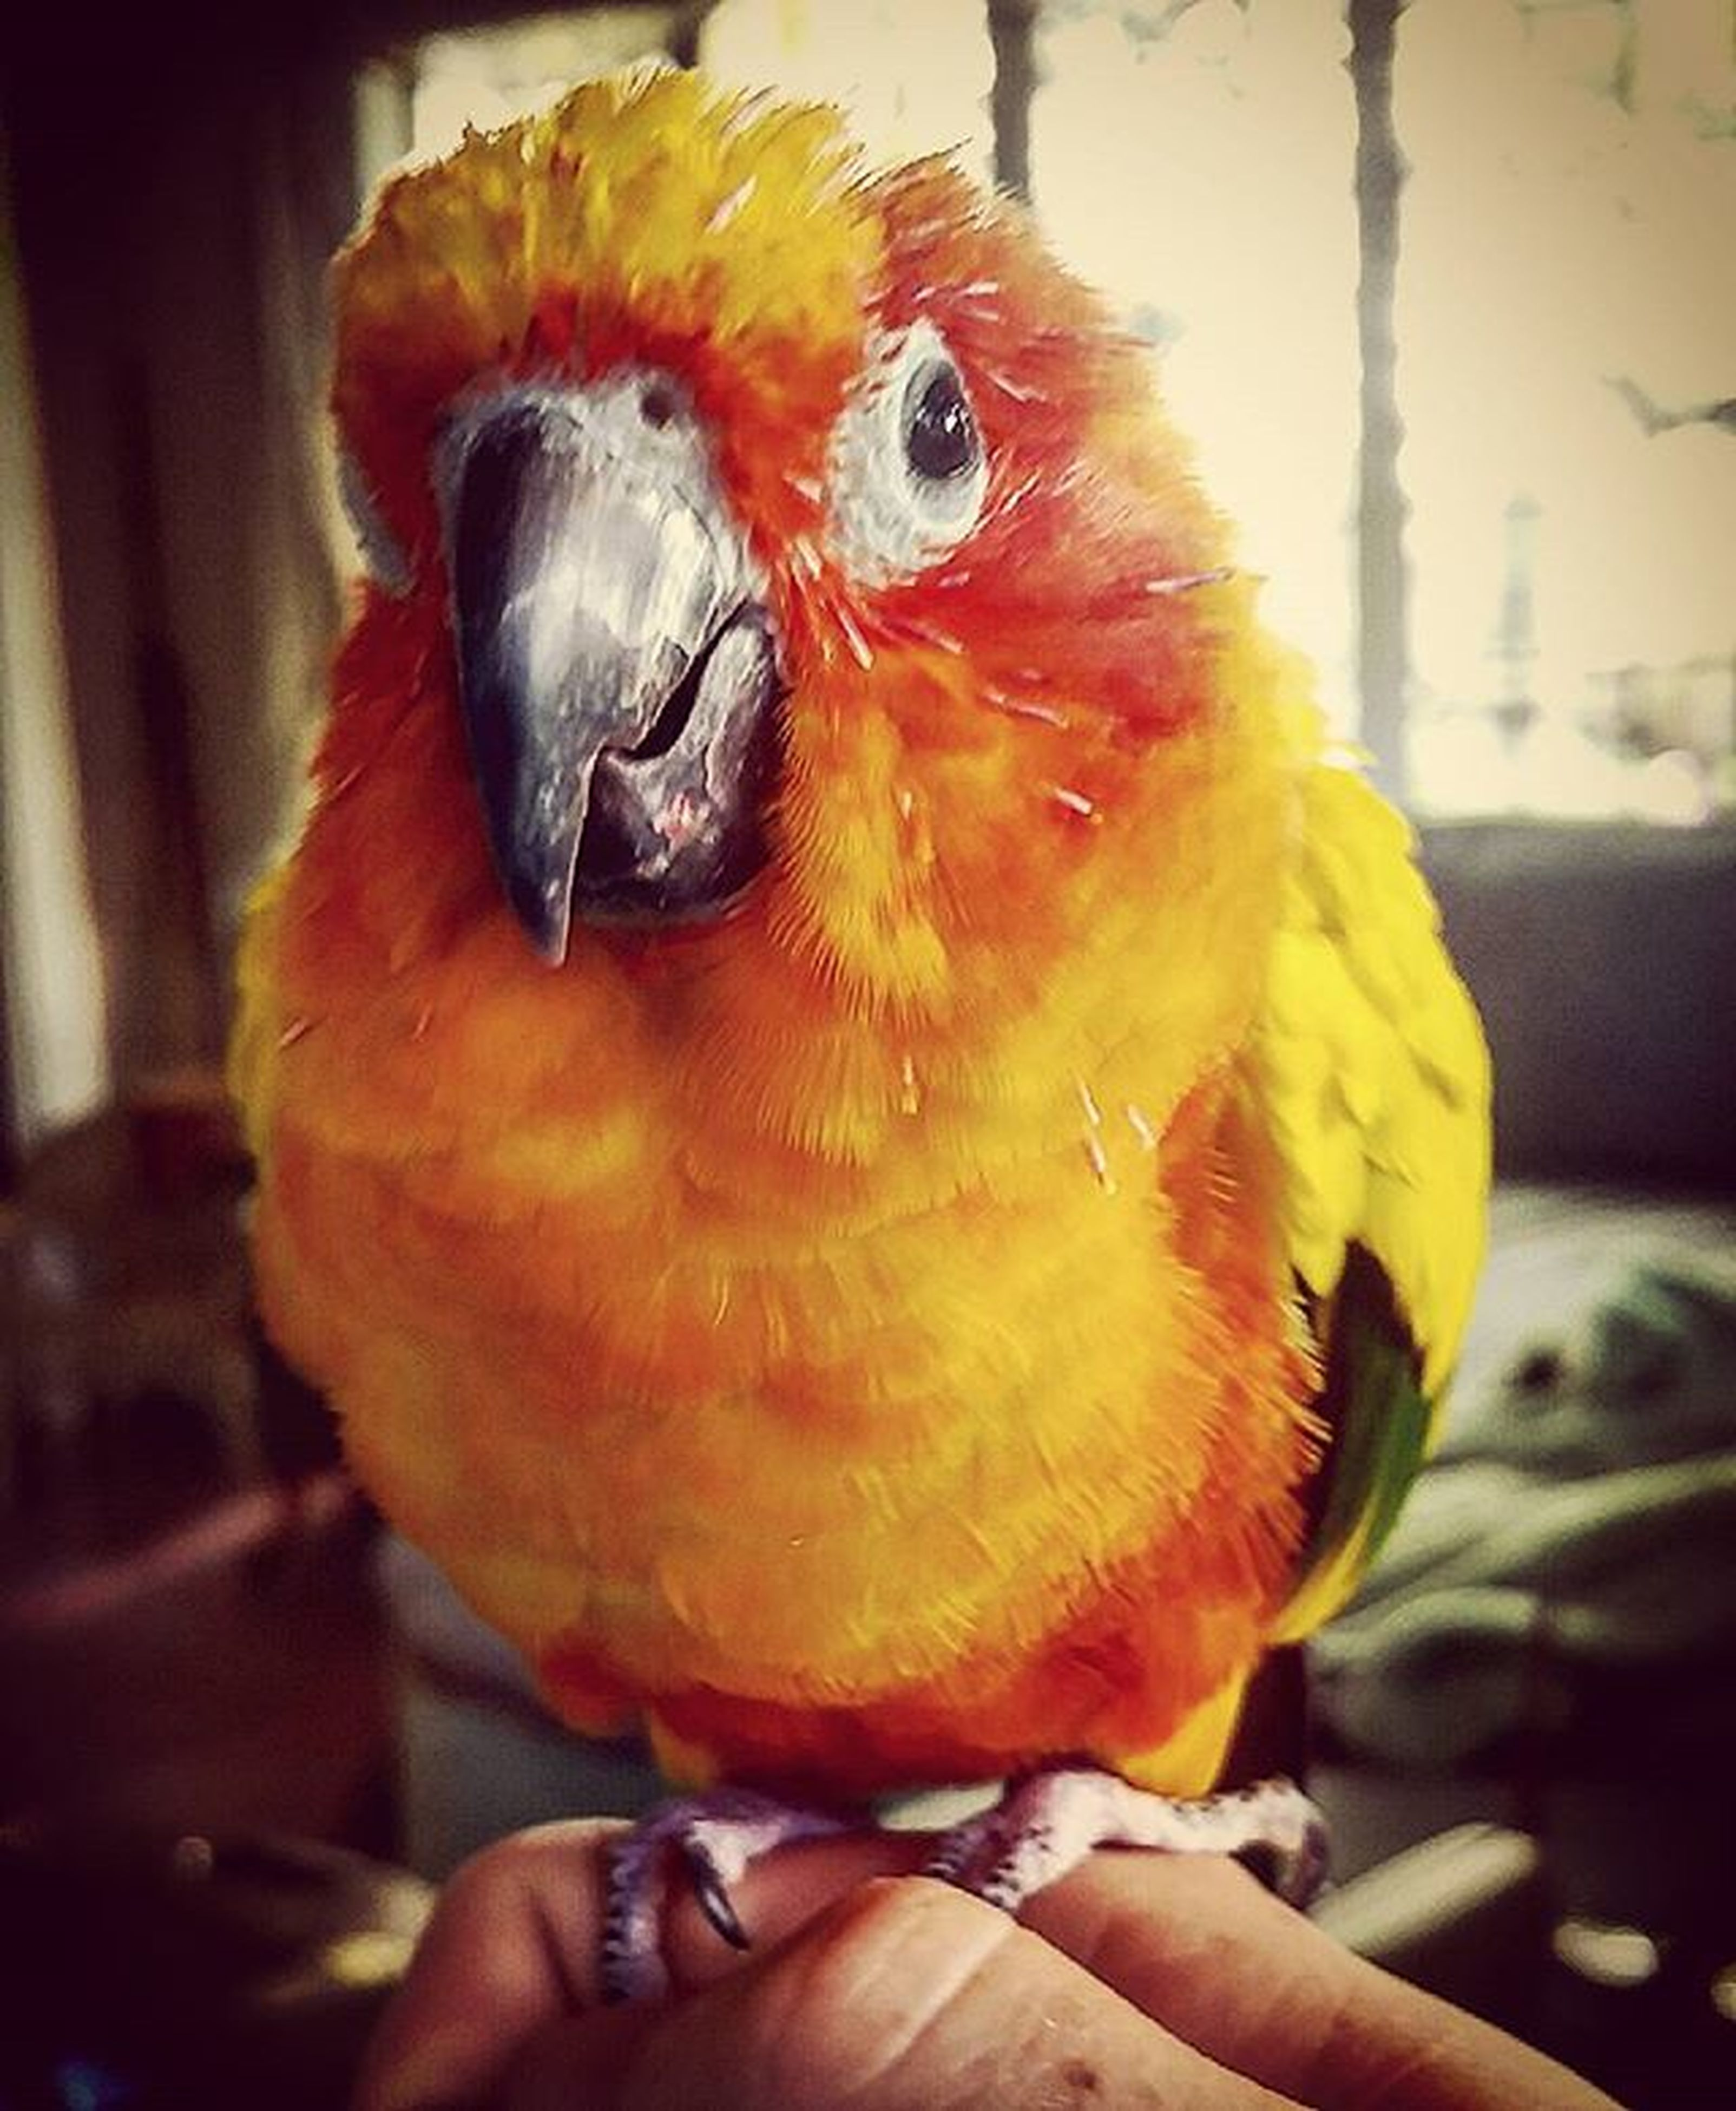 one animal, animal themes, person, holding, focus on foreground, bird, wildlife, animals in the wild, close-up, parrot, pets, unrecognizable person, part of, lifestyles, animal head, men, human finger